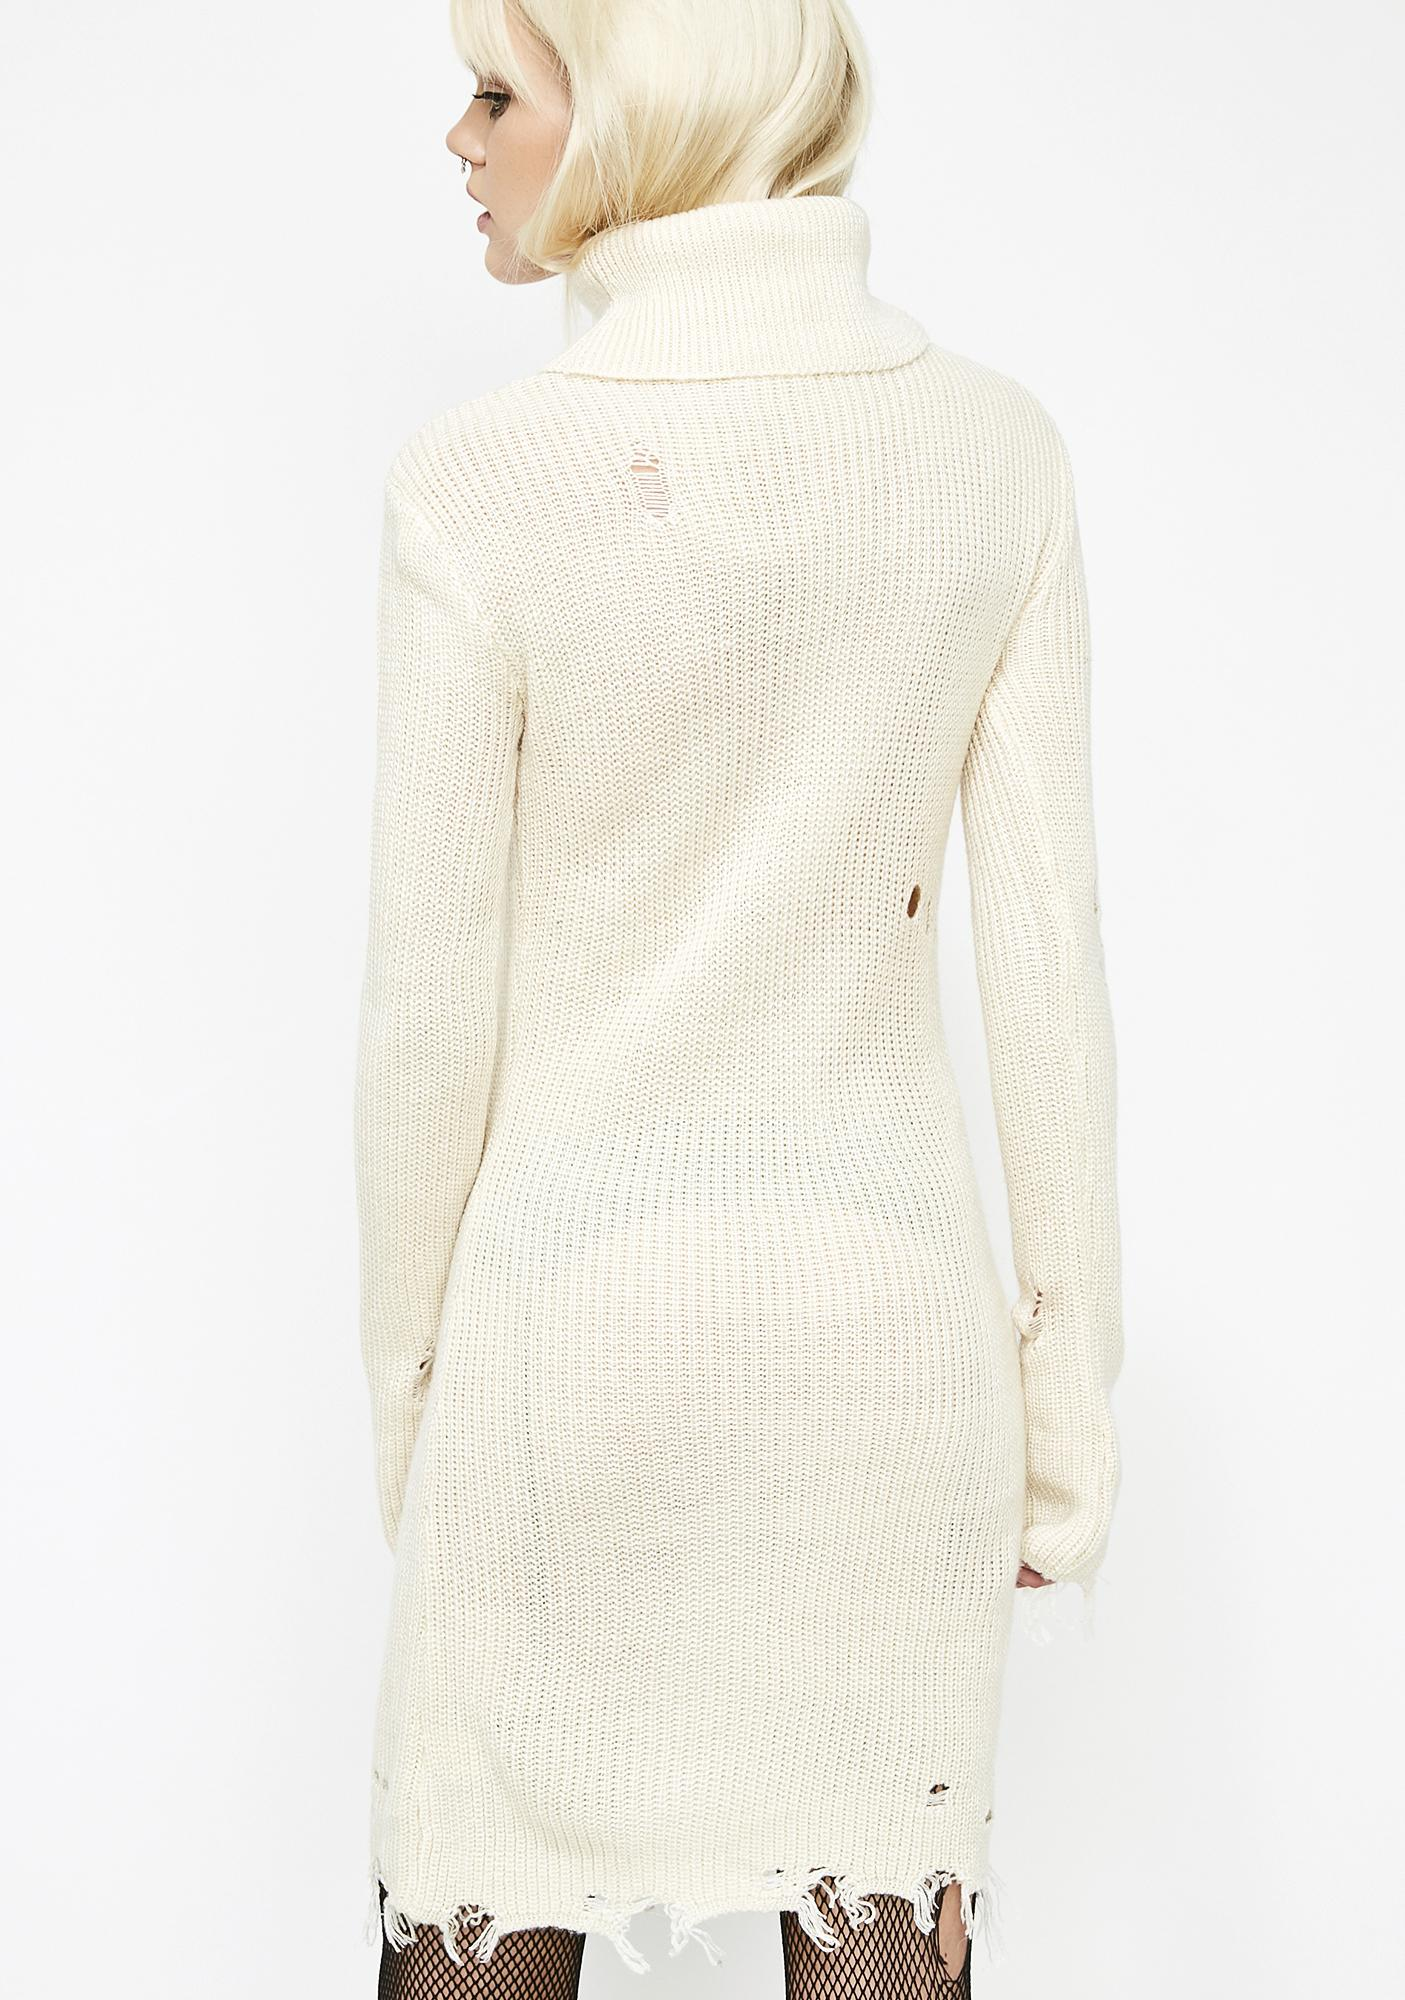 Lady Killer Sweater Dress